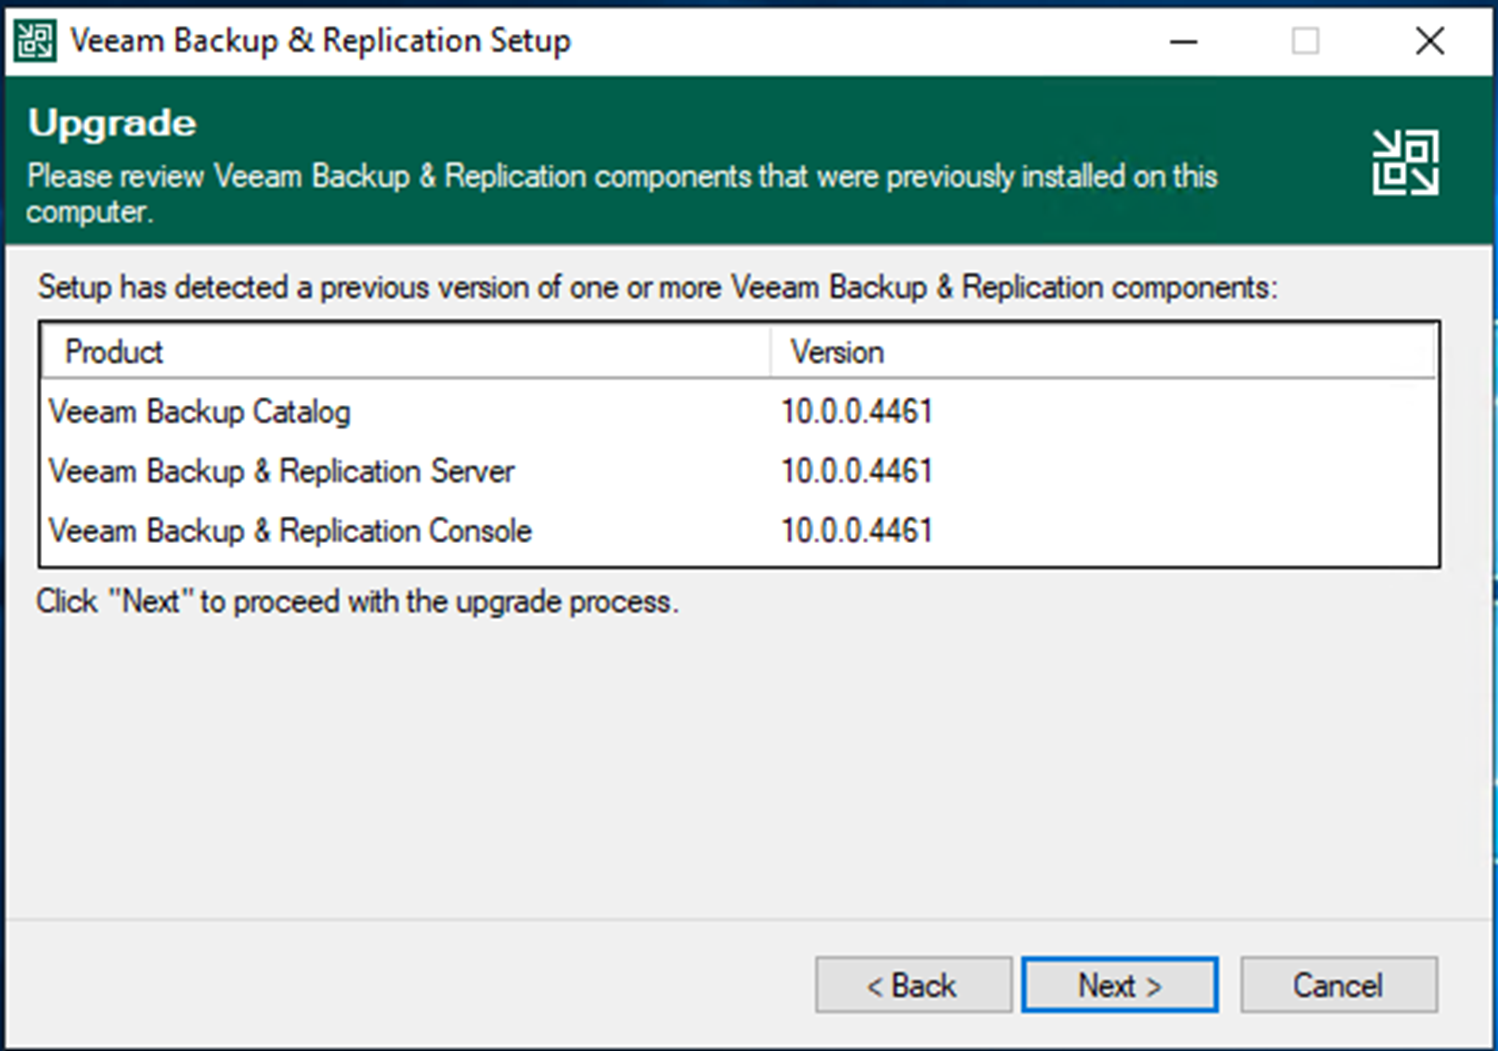 100320 1854 HowtoInstal9 - How to Install (Upgrade) Veeam Backup and Replication V10a #Veeam #VBR 10a #Hyper-V #WINDOWSERVER #Azure #AWS #NAS #VMWARE #vCloud #Azure Stack #Linux